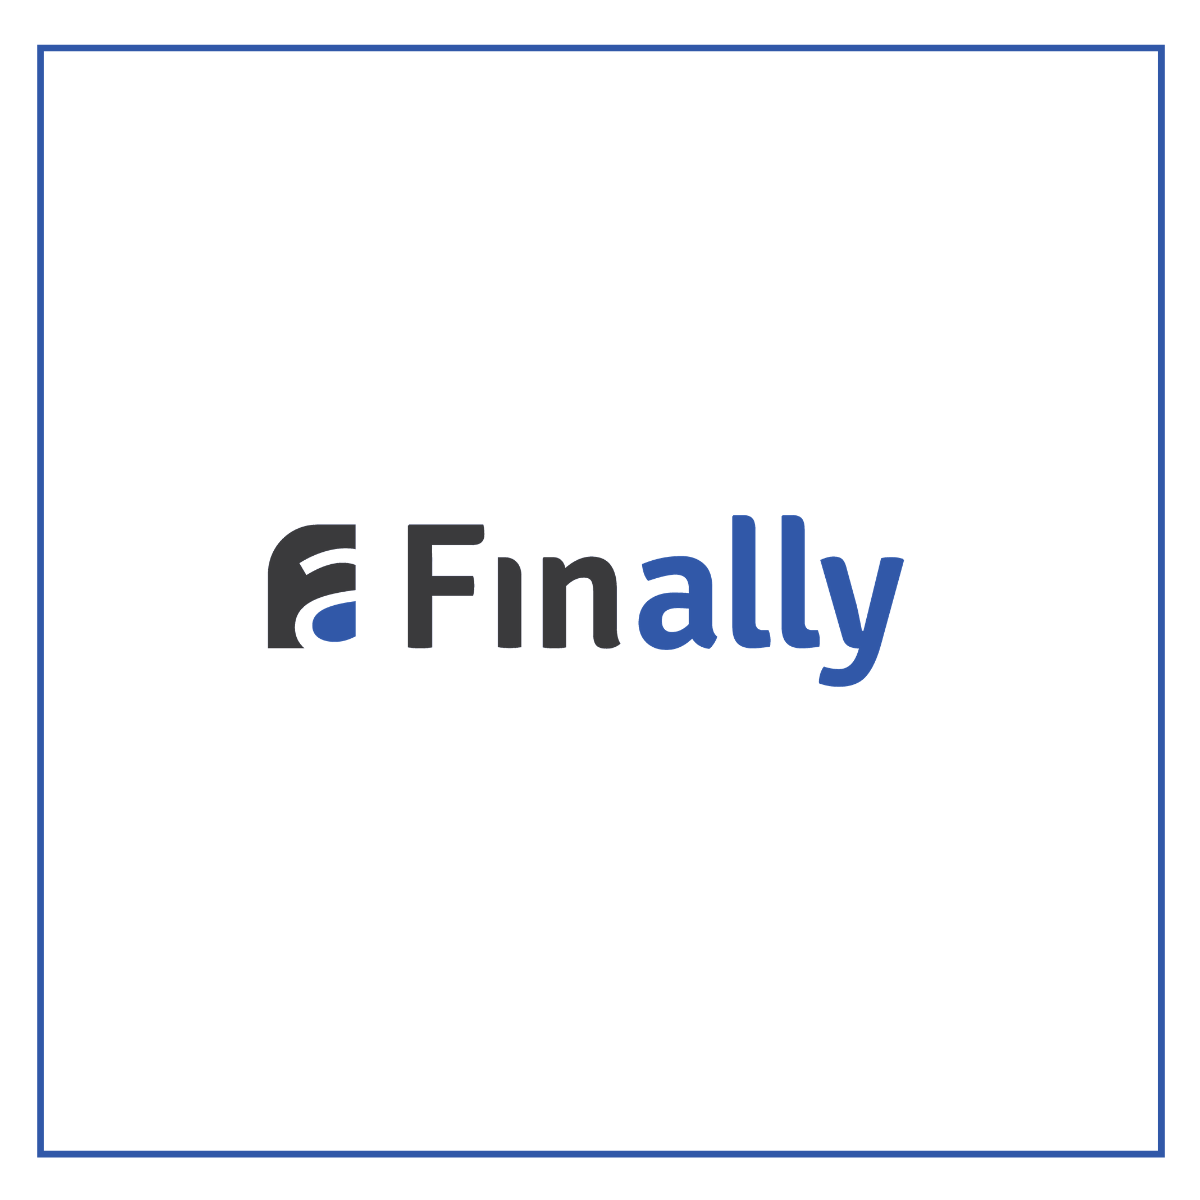 Finally ⎯ Accessible Financial Planning For All Canadians, Regardless of Their Financial Situation